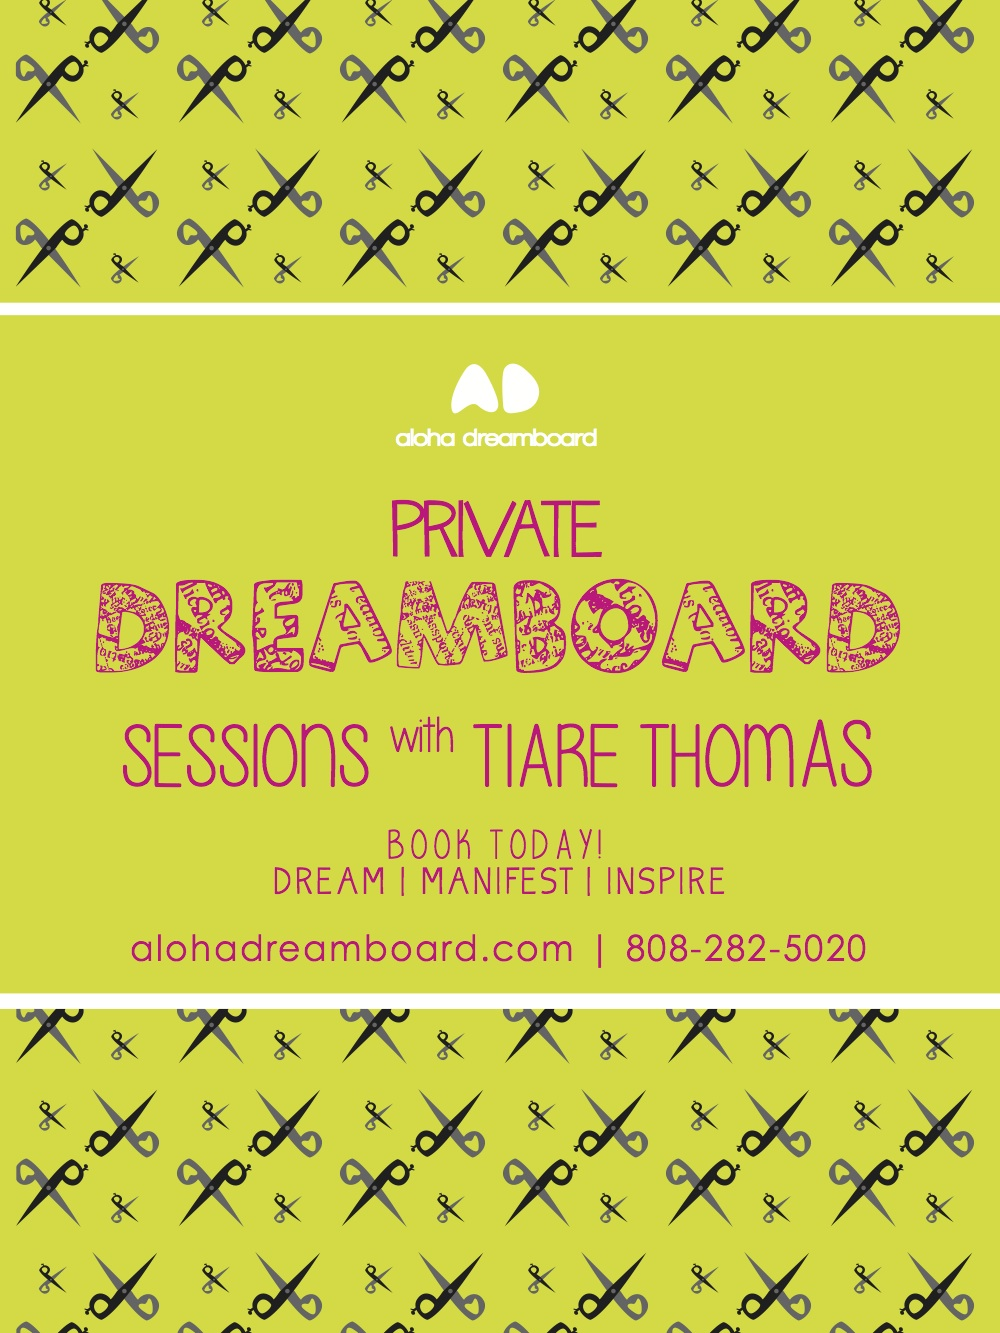 privatedreamboardsession